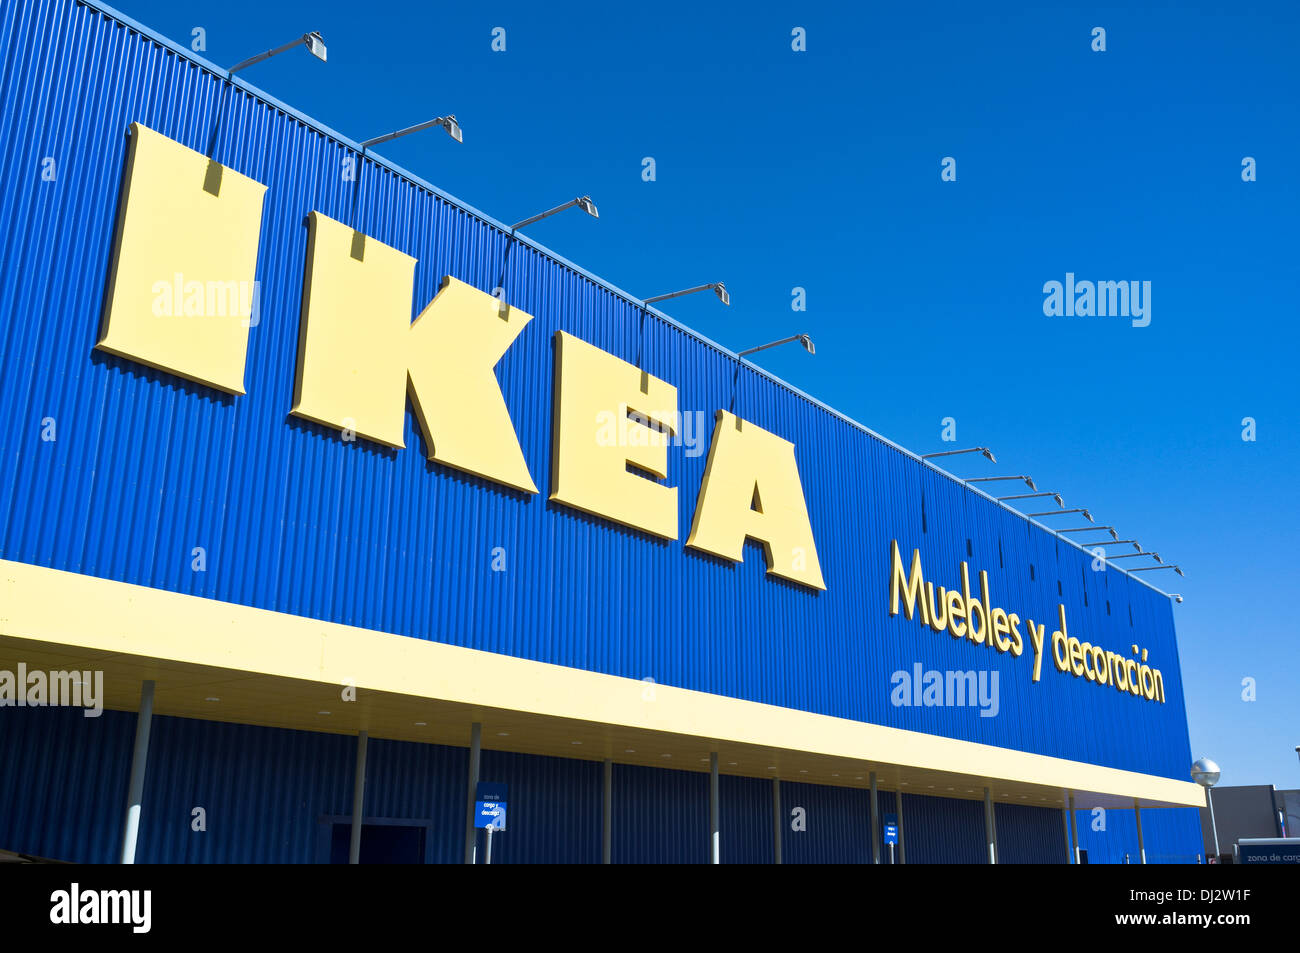 Ikea Front Dh Ikea Superstore Europe Ikea Shop Front Sign Arrecife Lanzarote Stock Photo - Alamy